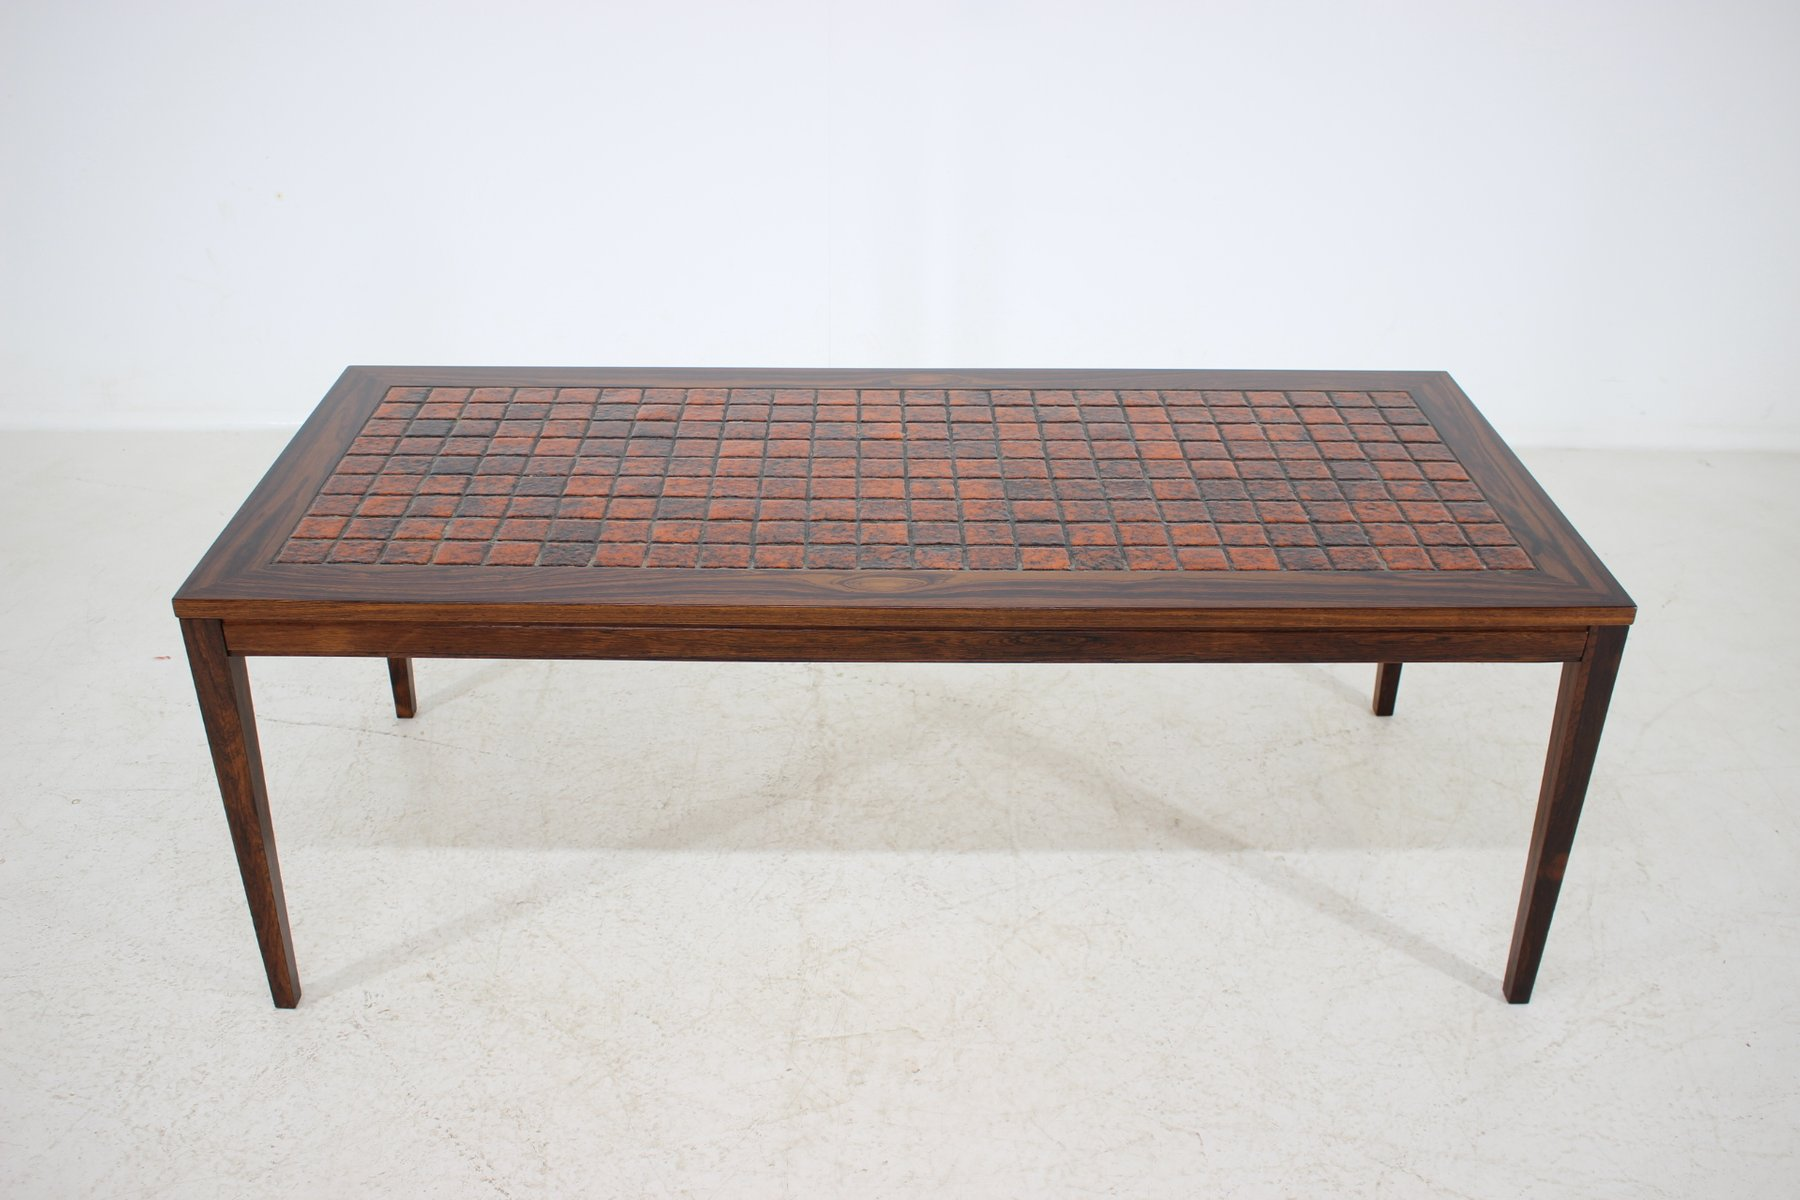 Danish Rosewood Ceramic Tile Coffee Table 1960s For Sale At Pamono [ 1200 x 1800 Pixel ]